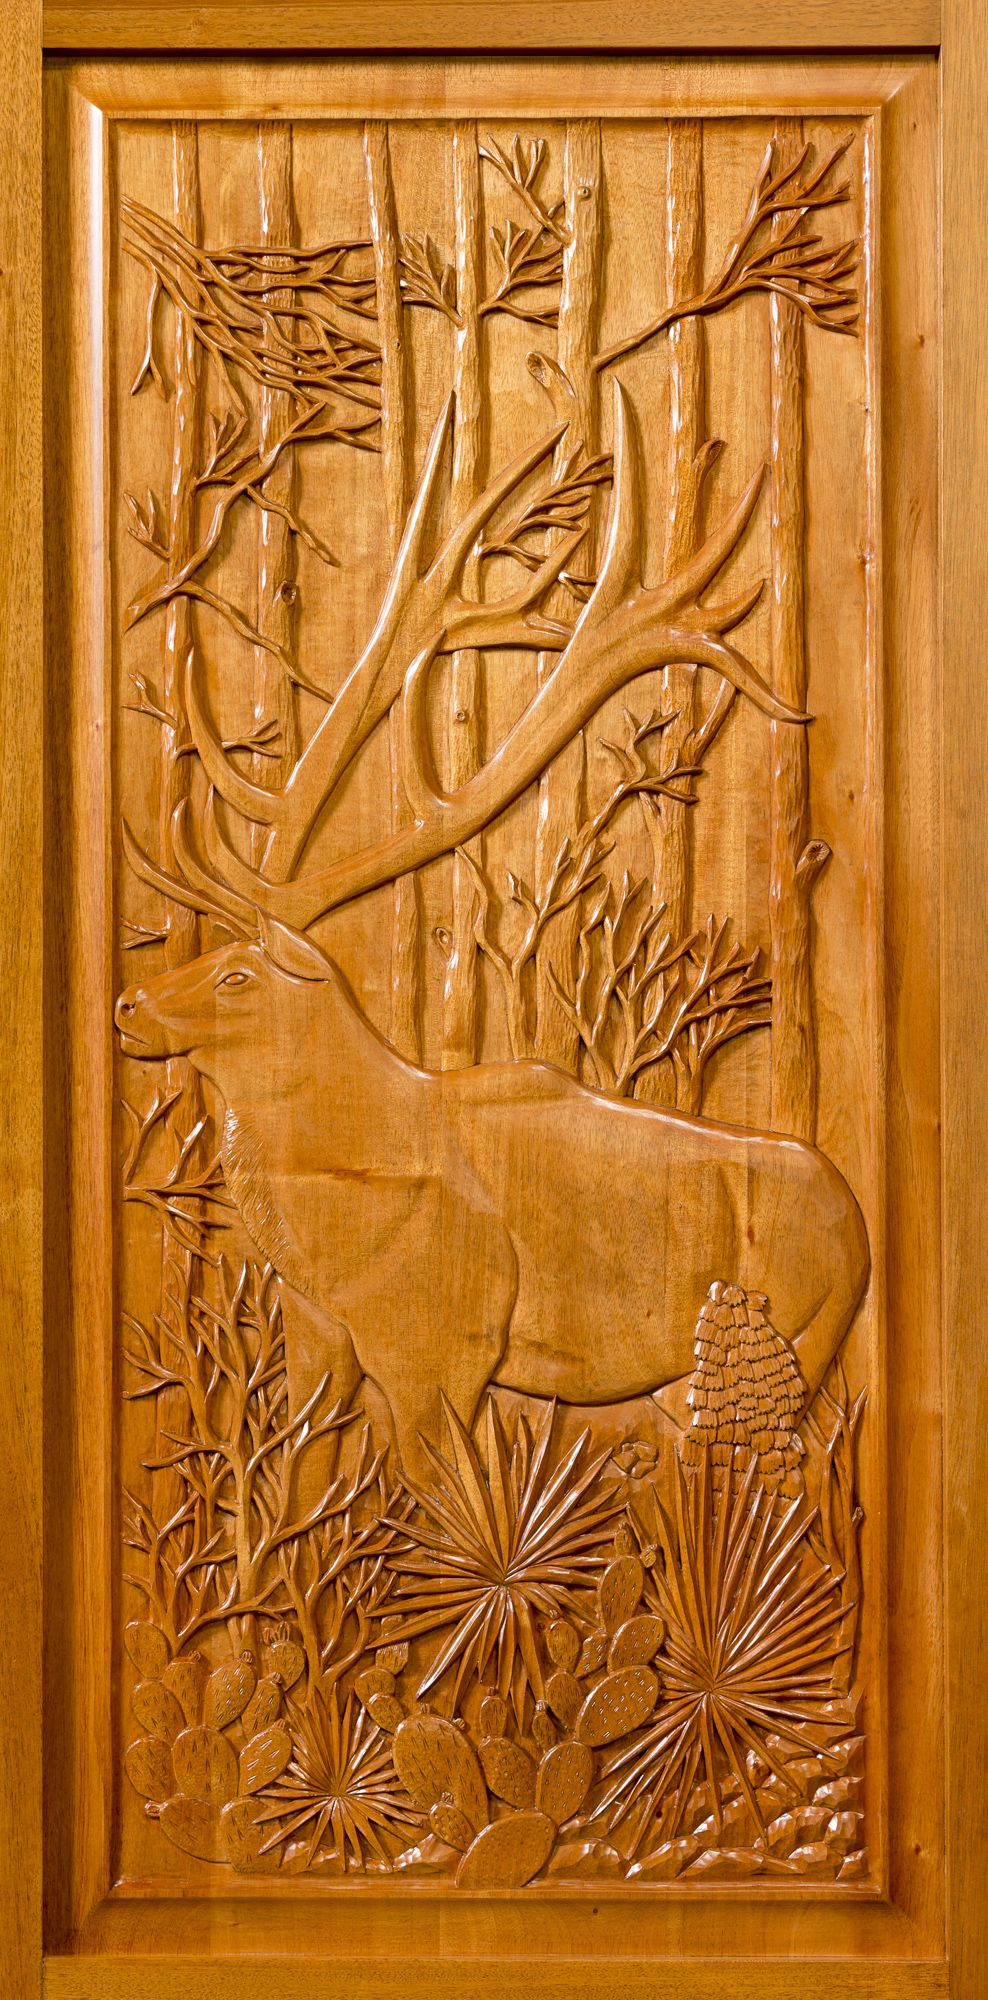 Hand carved handcrafted solid genuine mahogany panel art functional